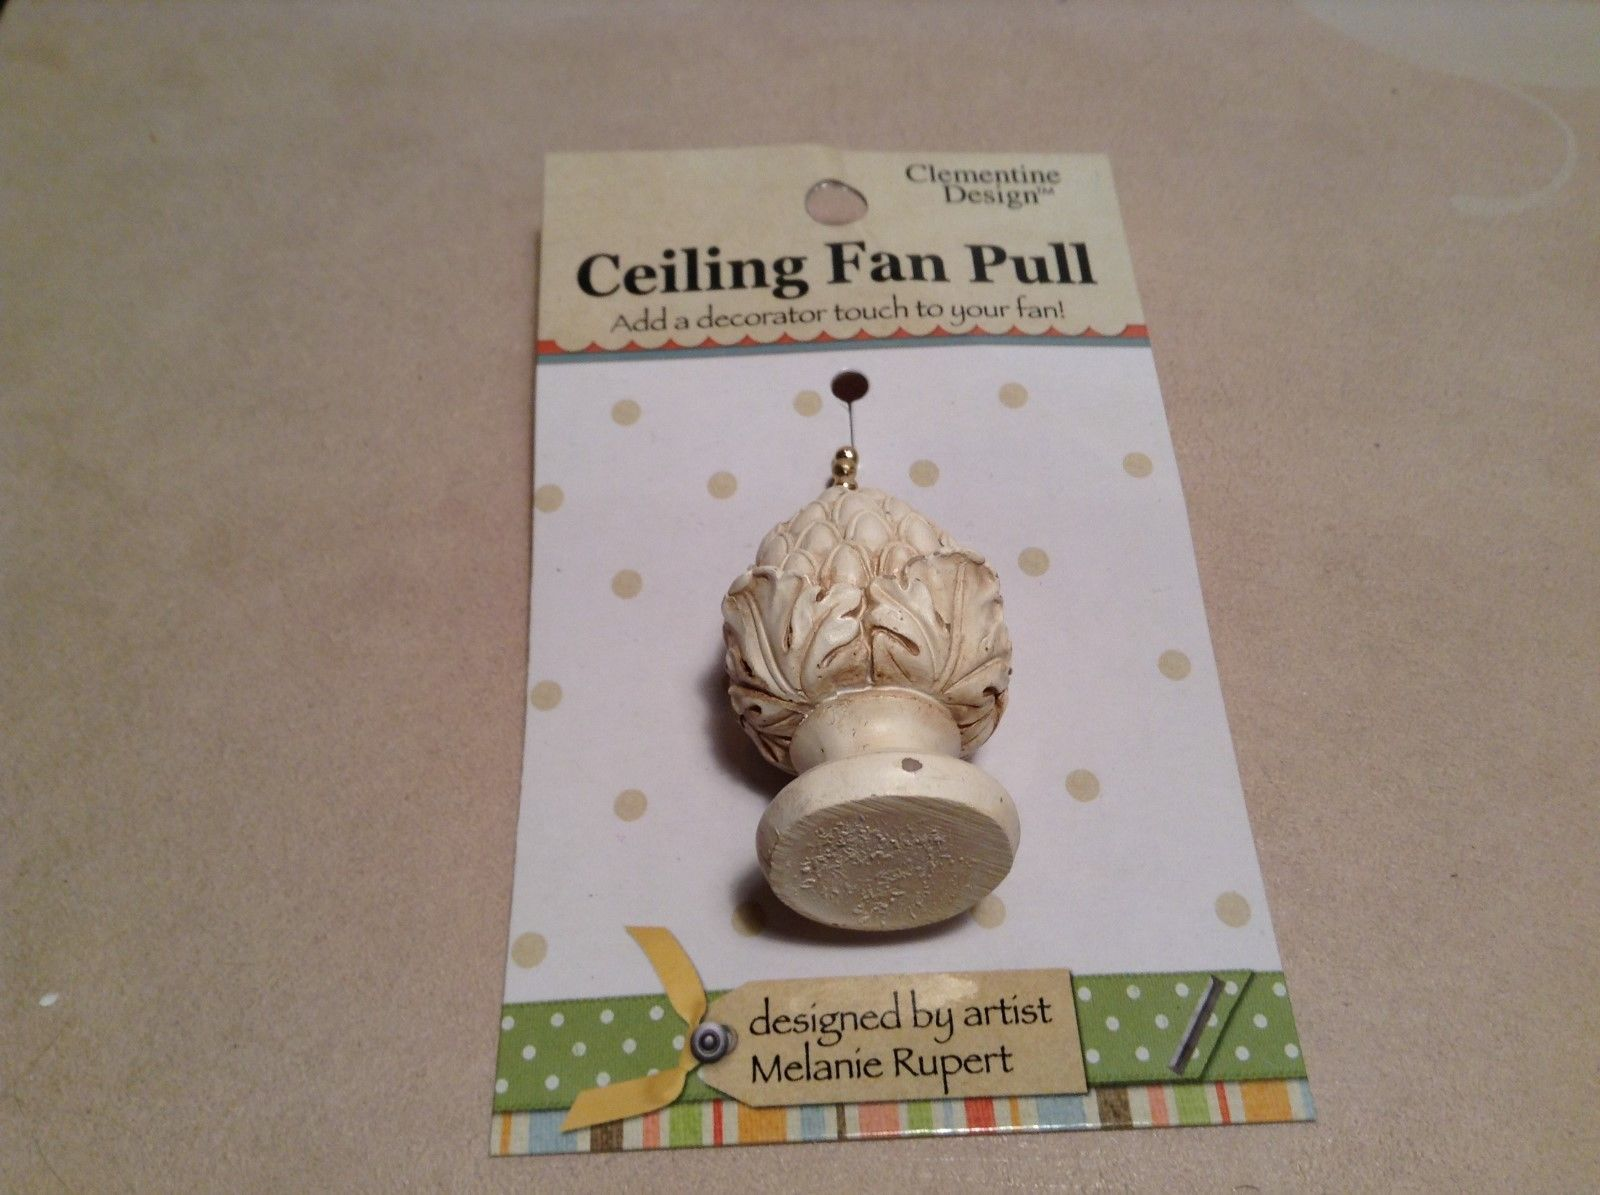 NEW Clementine Design Roman Plant Statue Ceiling Fan Pull